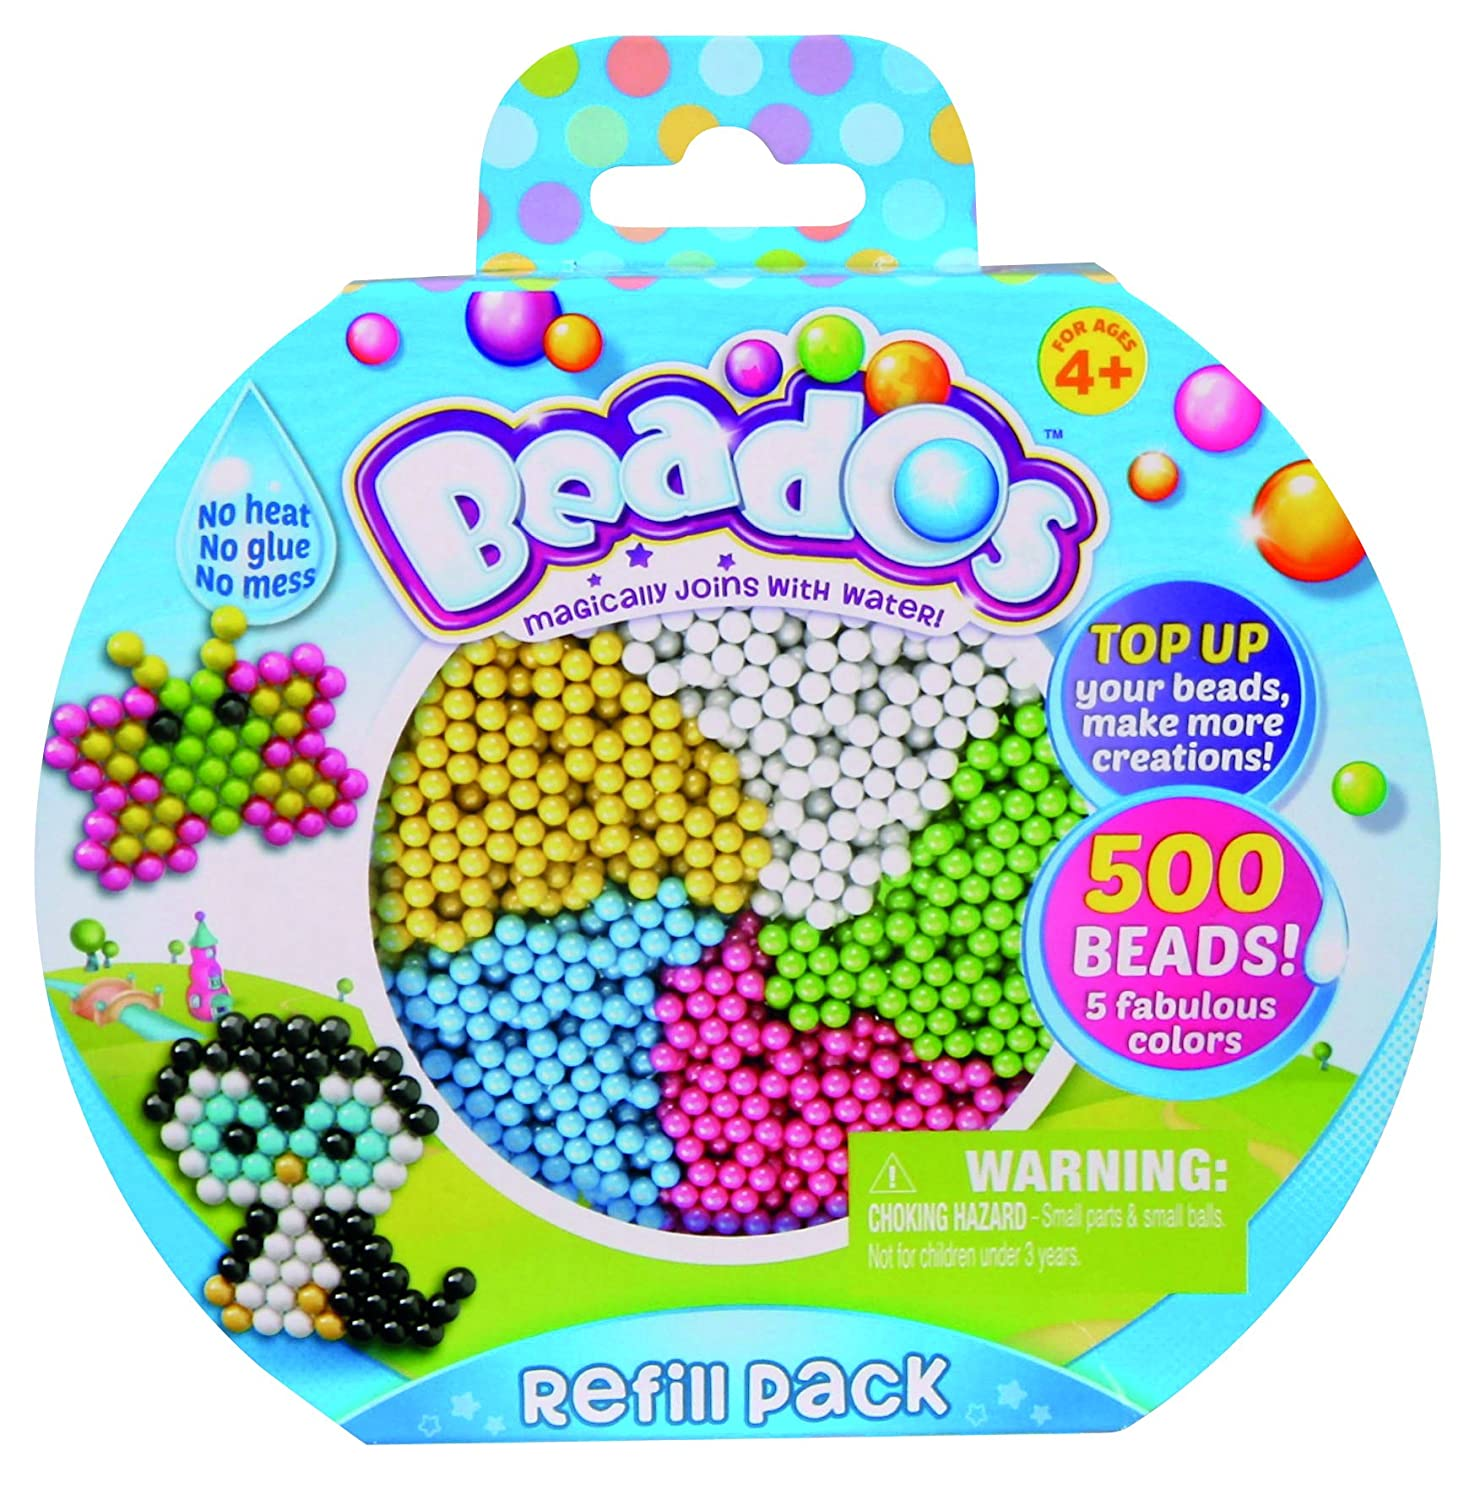 Beados 500 Beads Refill Pack 10632